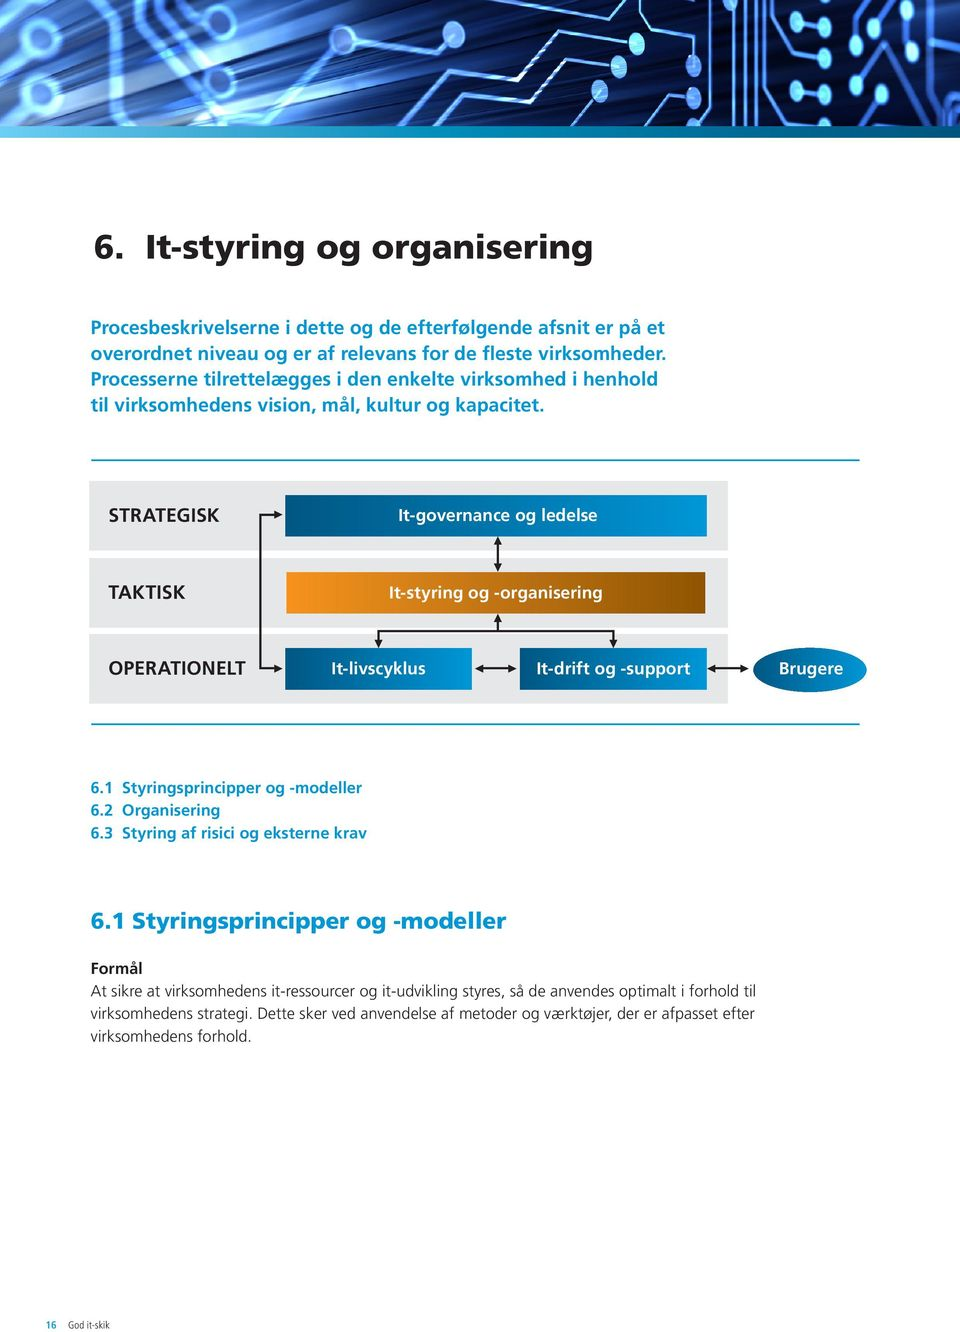 STRATEGISK It-governance og ledelse TAKTISK It-styring og -organisering OPERATIONELT It-livscyklus It-drift og -support Brugere 6.1 Styringsprincipper og -modeller 6.2 Organisering 6.